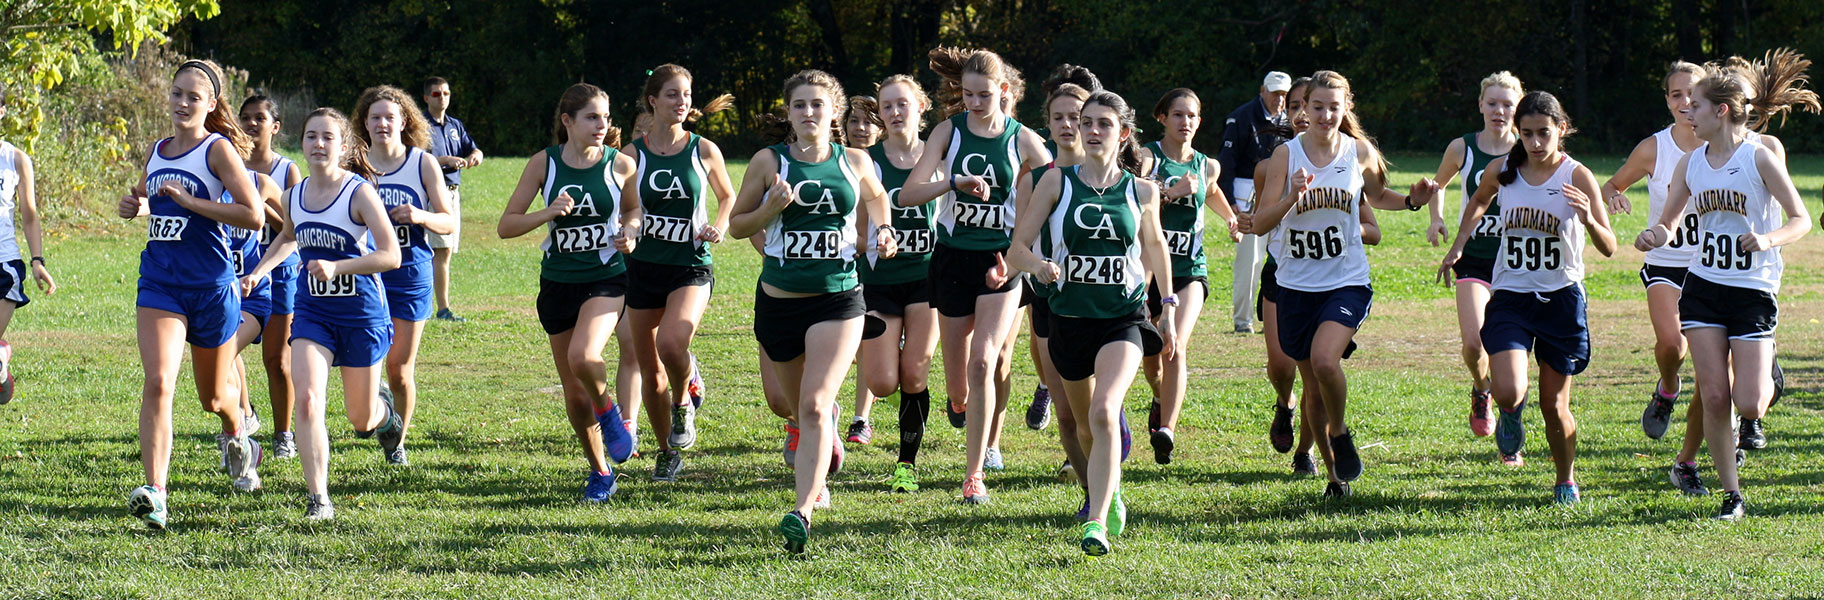 Girls Cross Country at Concord Academy